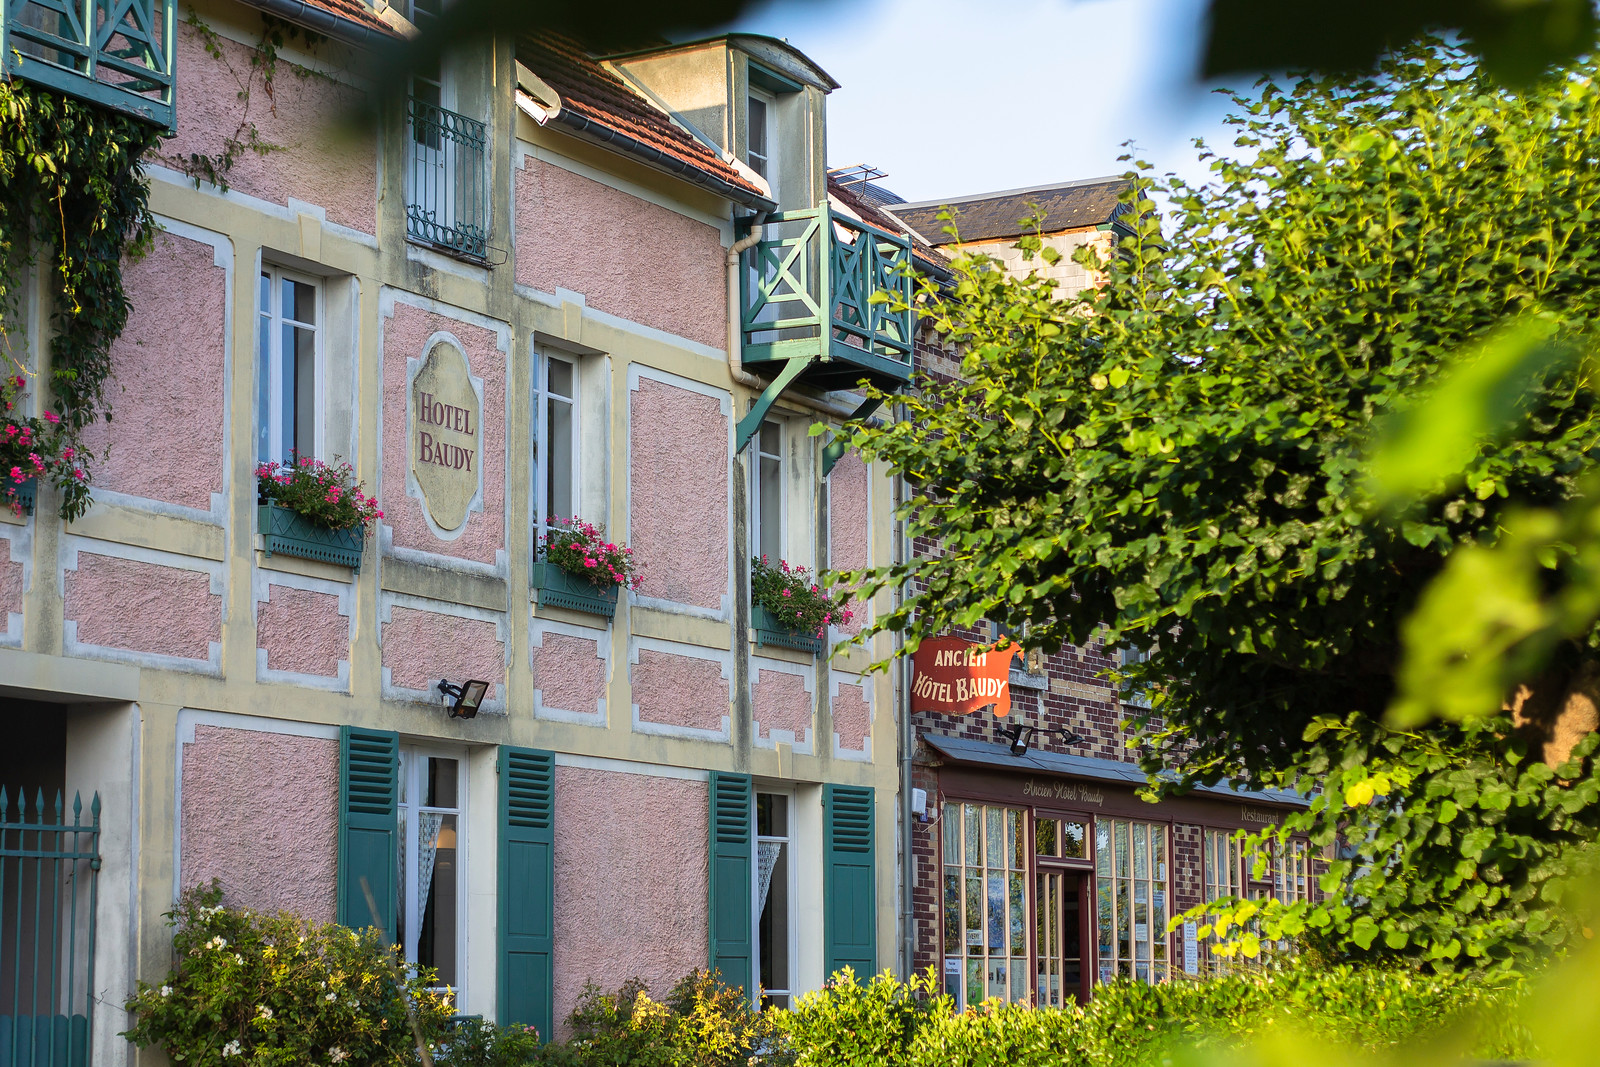 Giverny town featuring the pink Hotel Baudy